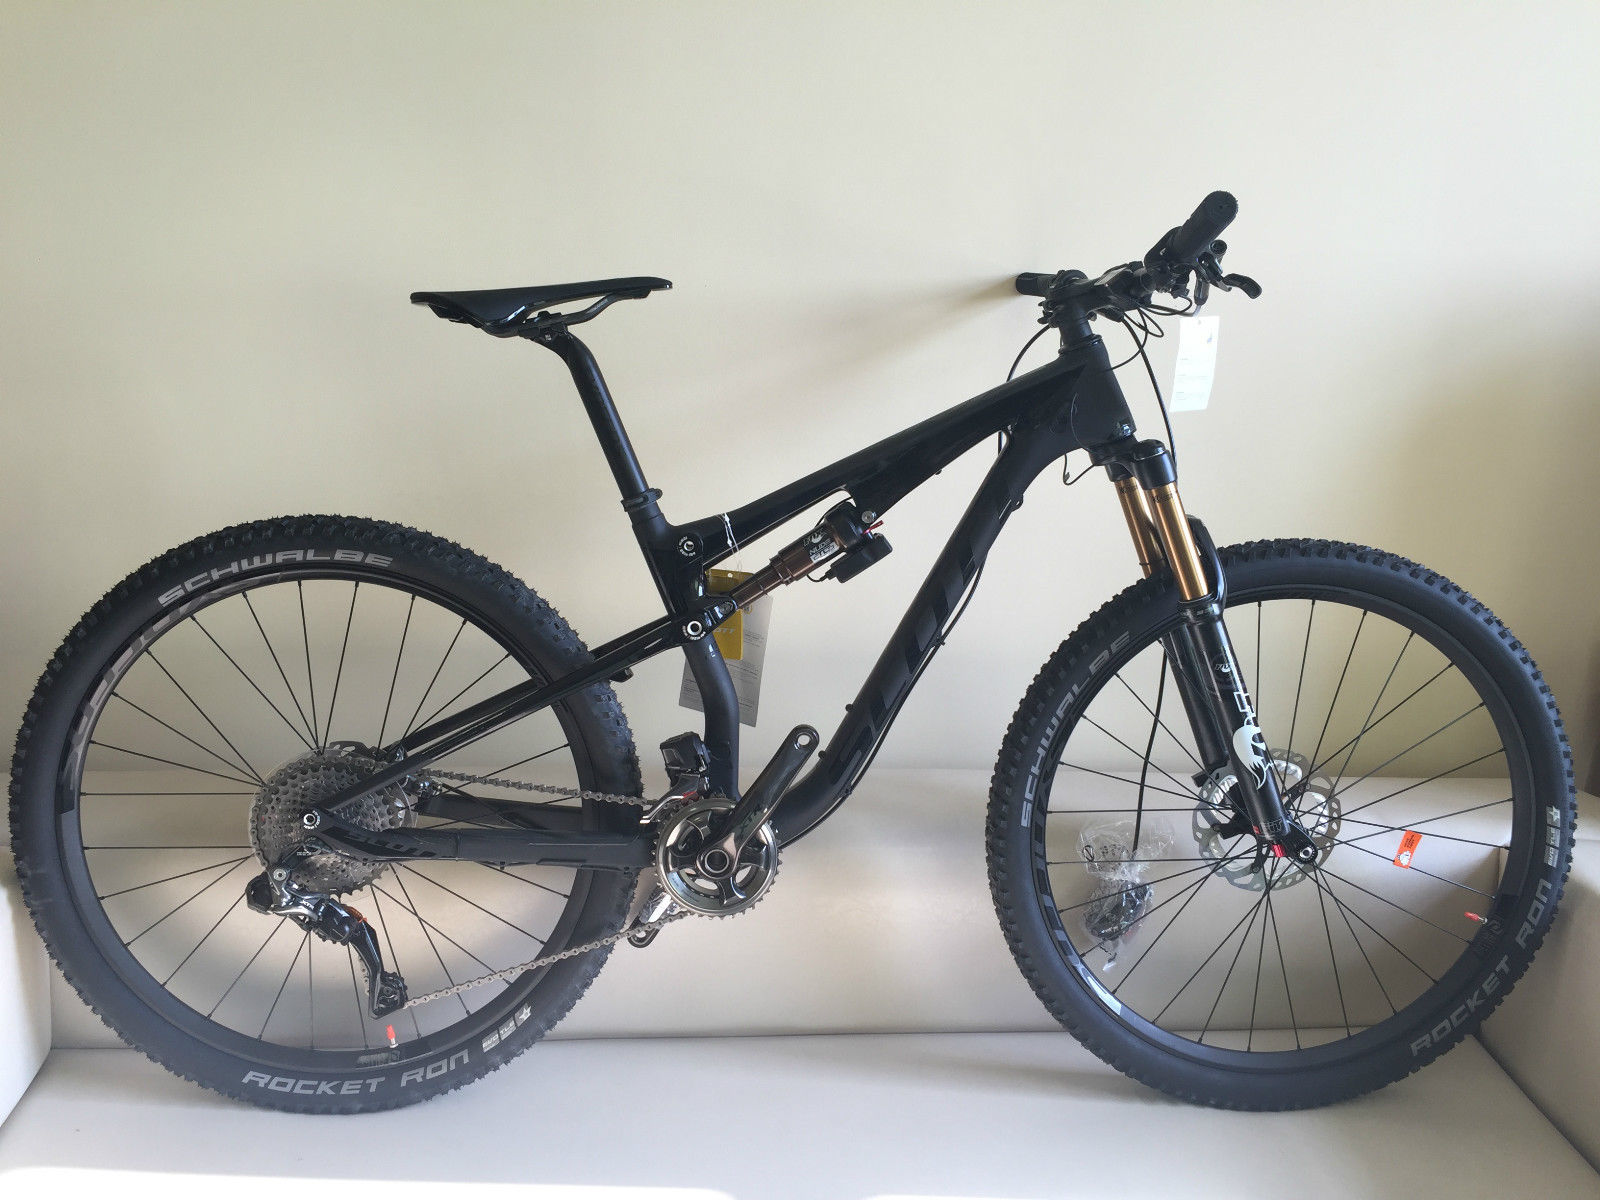 2015 Scott Spark 700 Ultimate Di2 XTR Bike .......   $1,400 USD.